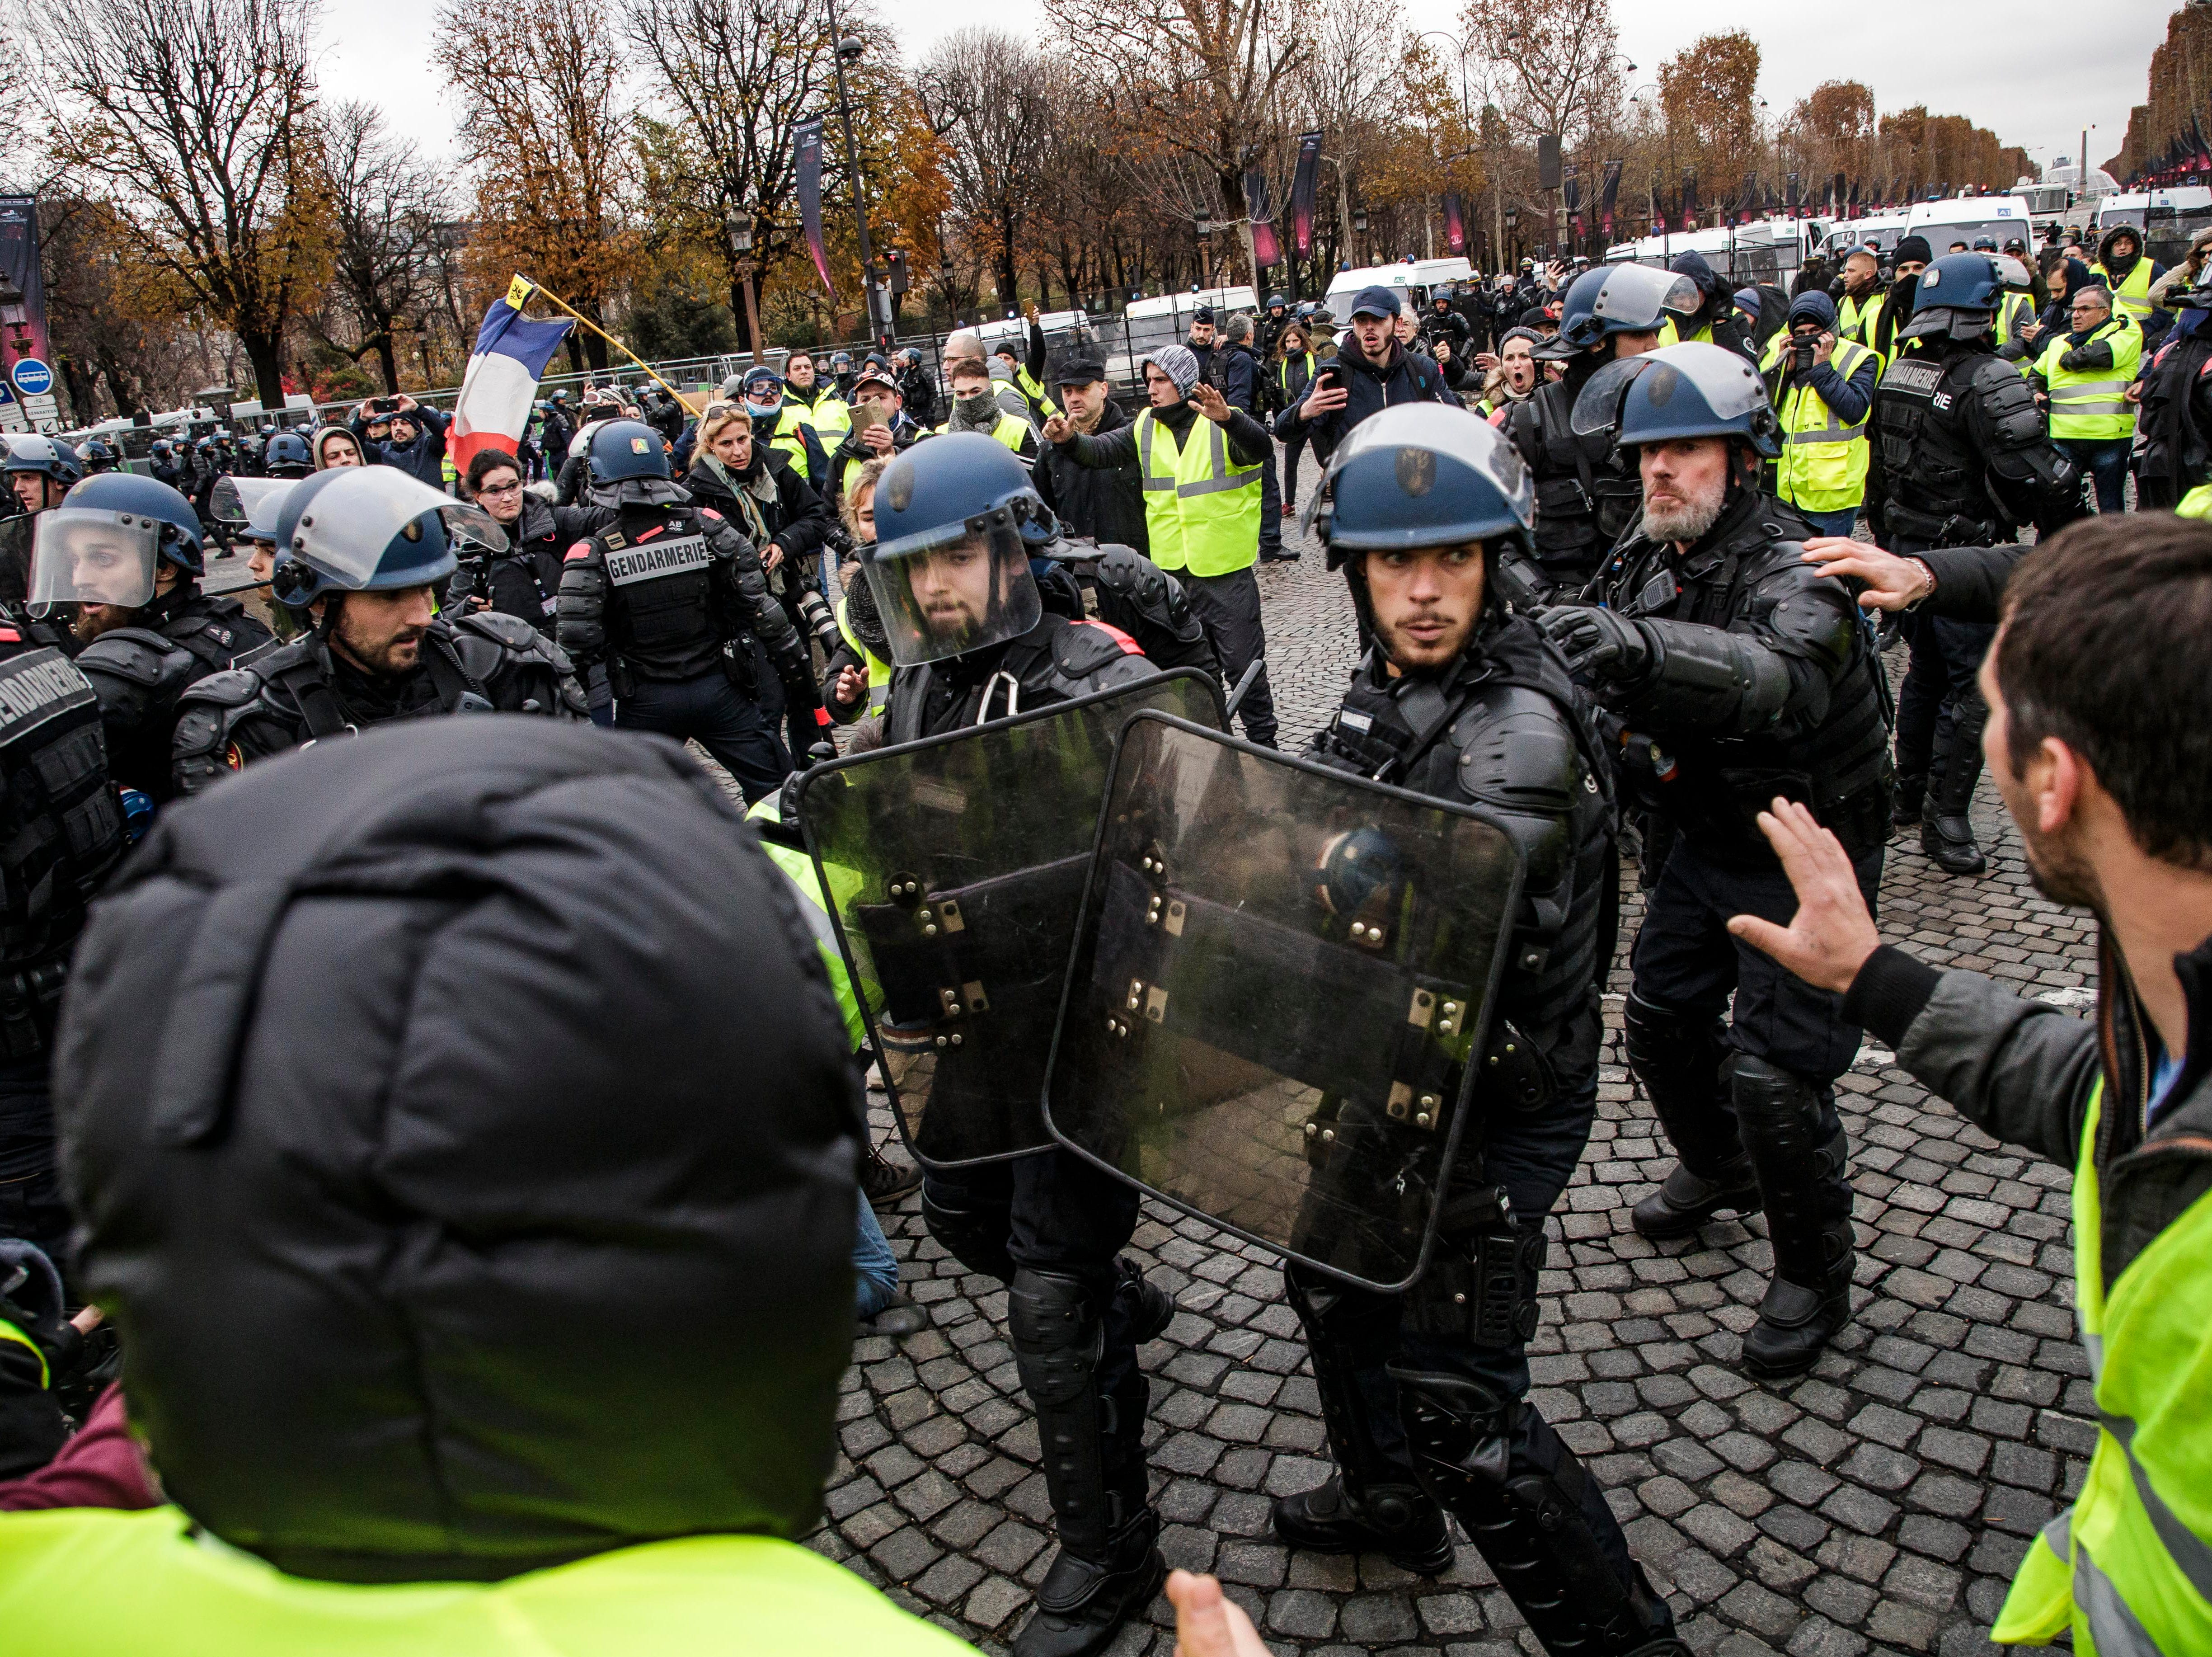 Police forces stop people wearing yellow vests, as a symbol of French driver's and citizen's protest against higher fuel prices, during a demonstration on the Champs Elysee as part of a nationwide protest in Paris, France on Nov. 24, 2018. The so-called 'gilets jaunes' (yellow vests) protest movement, which has reportedly no political affiliation, is protesting over fuel prices.